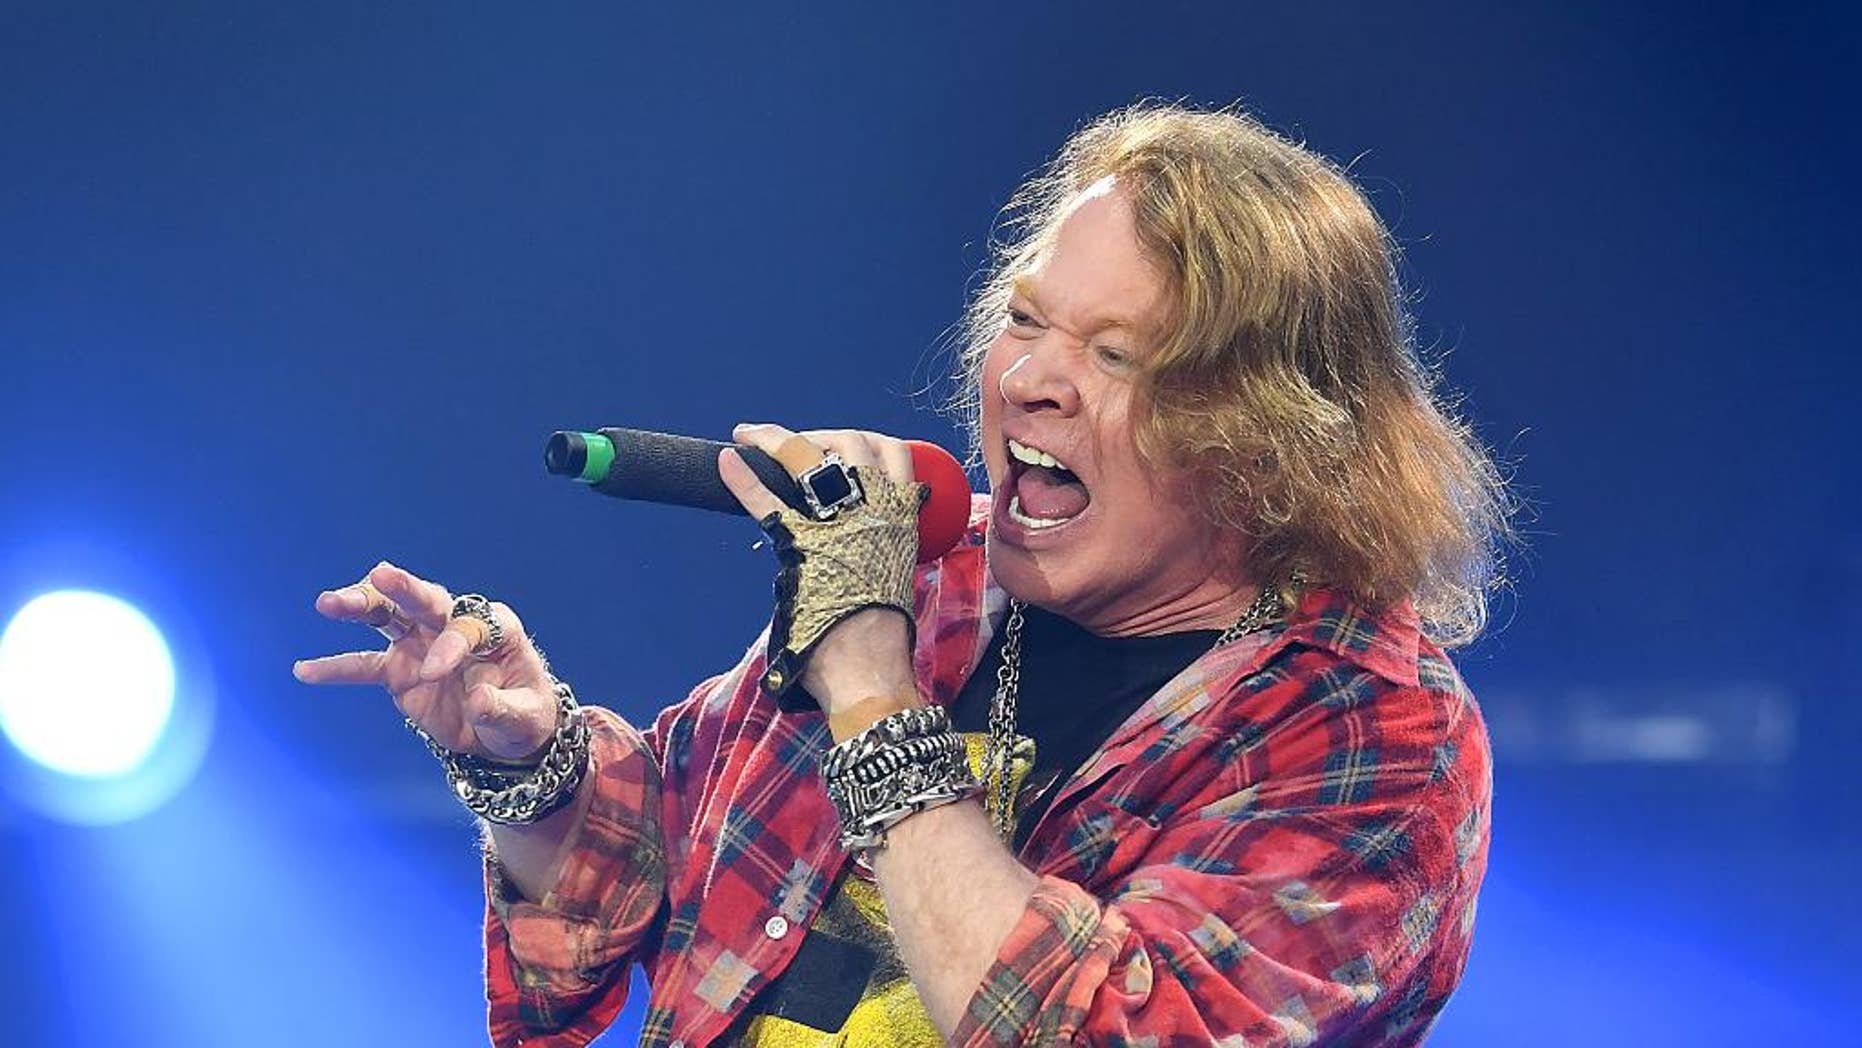 Axl Rose of the band AC/DC performs at the Olympic Stadium in London, Saturday, June 4, 2016. (Photo by Mark Allan/Invision/AP)-